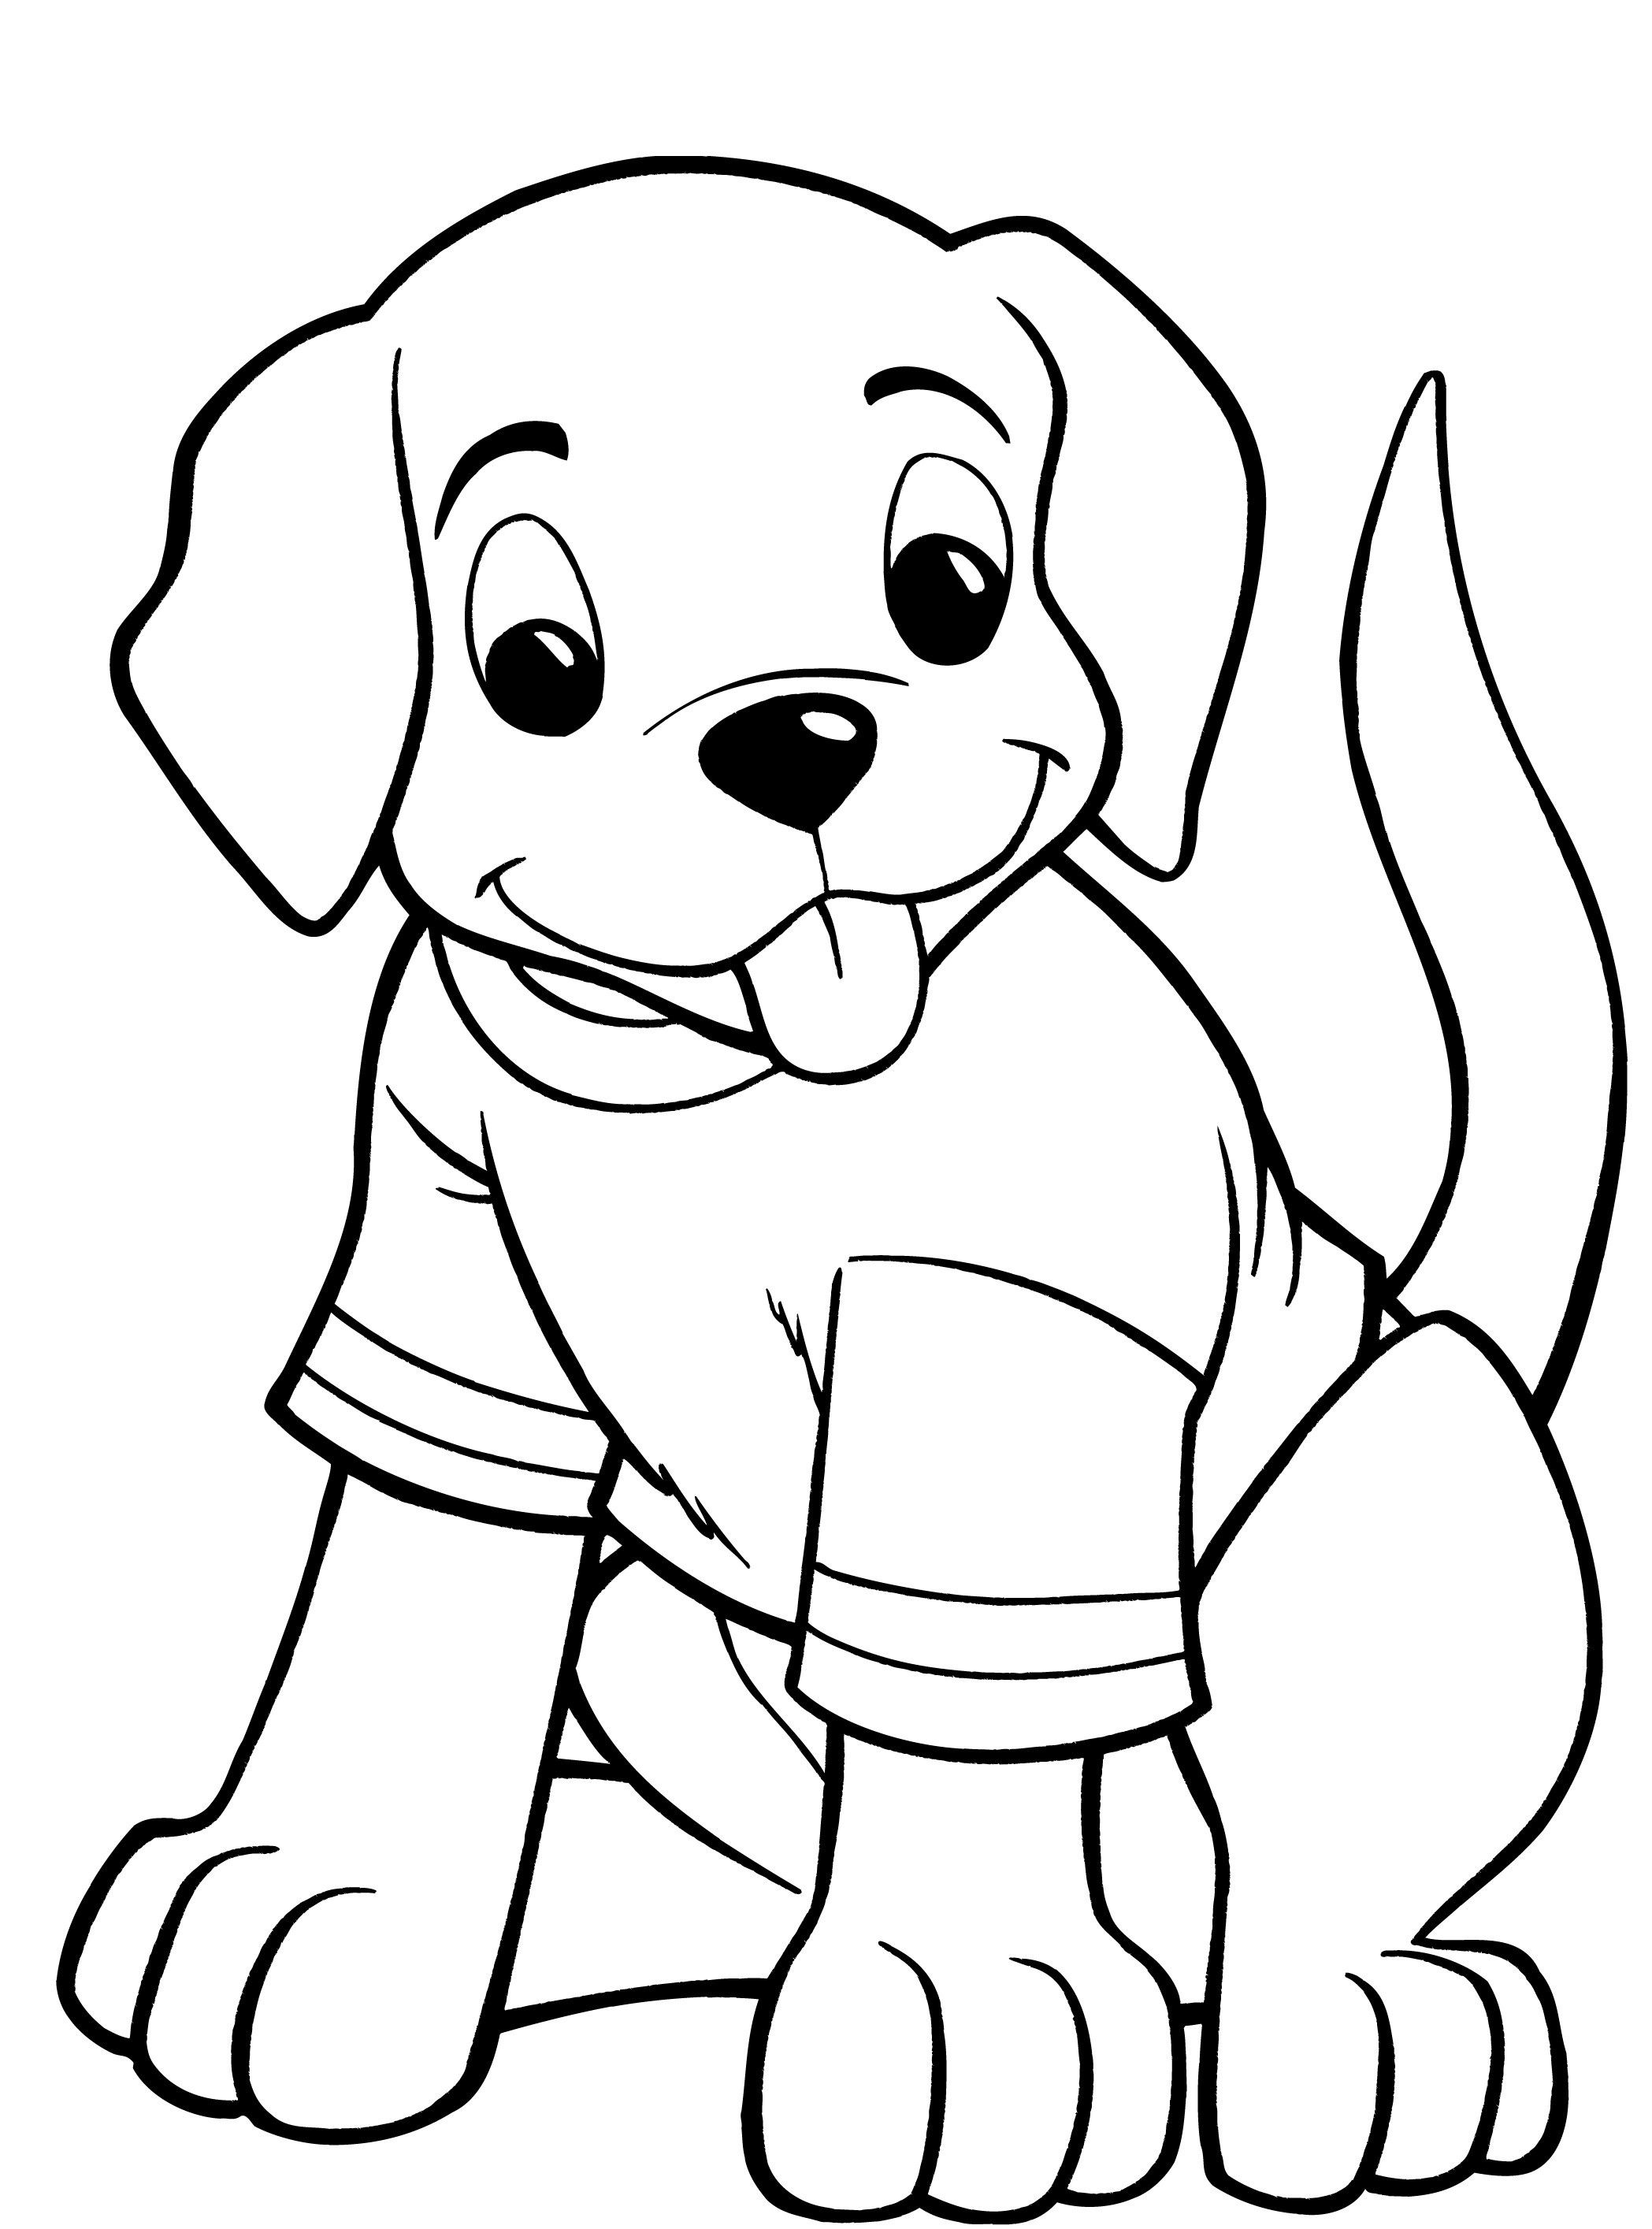 Dog Coloring Pages For Kids - Preschool and Kindergarten | Pinterest ...